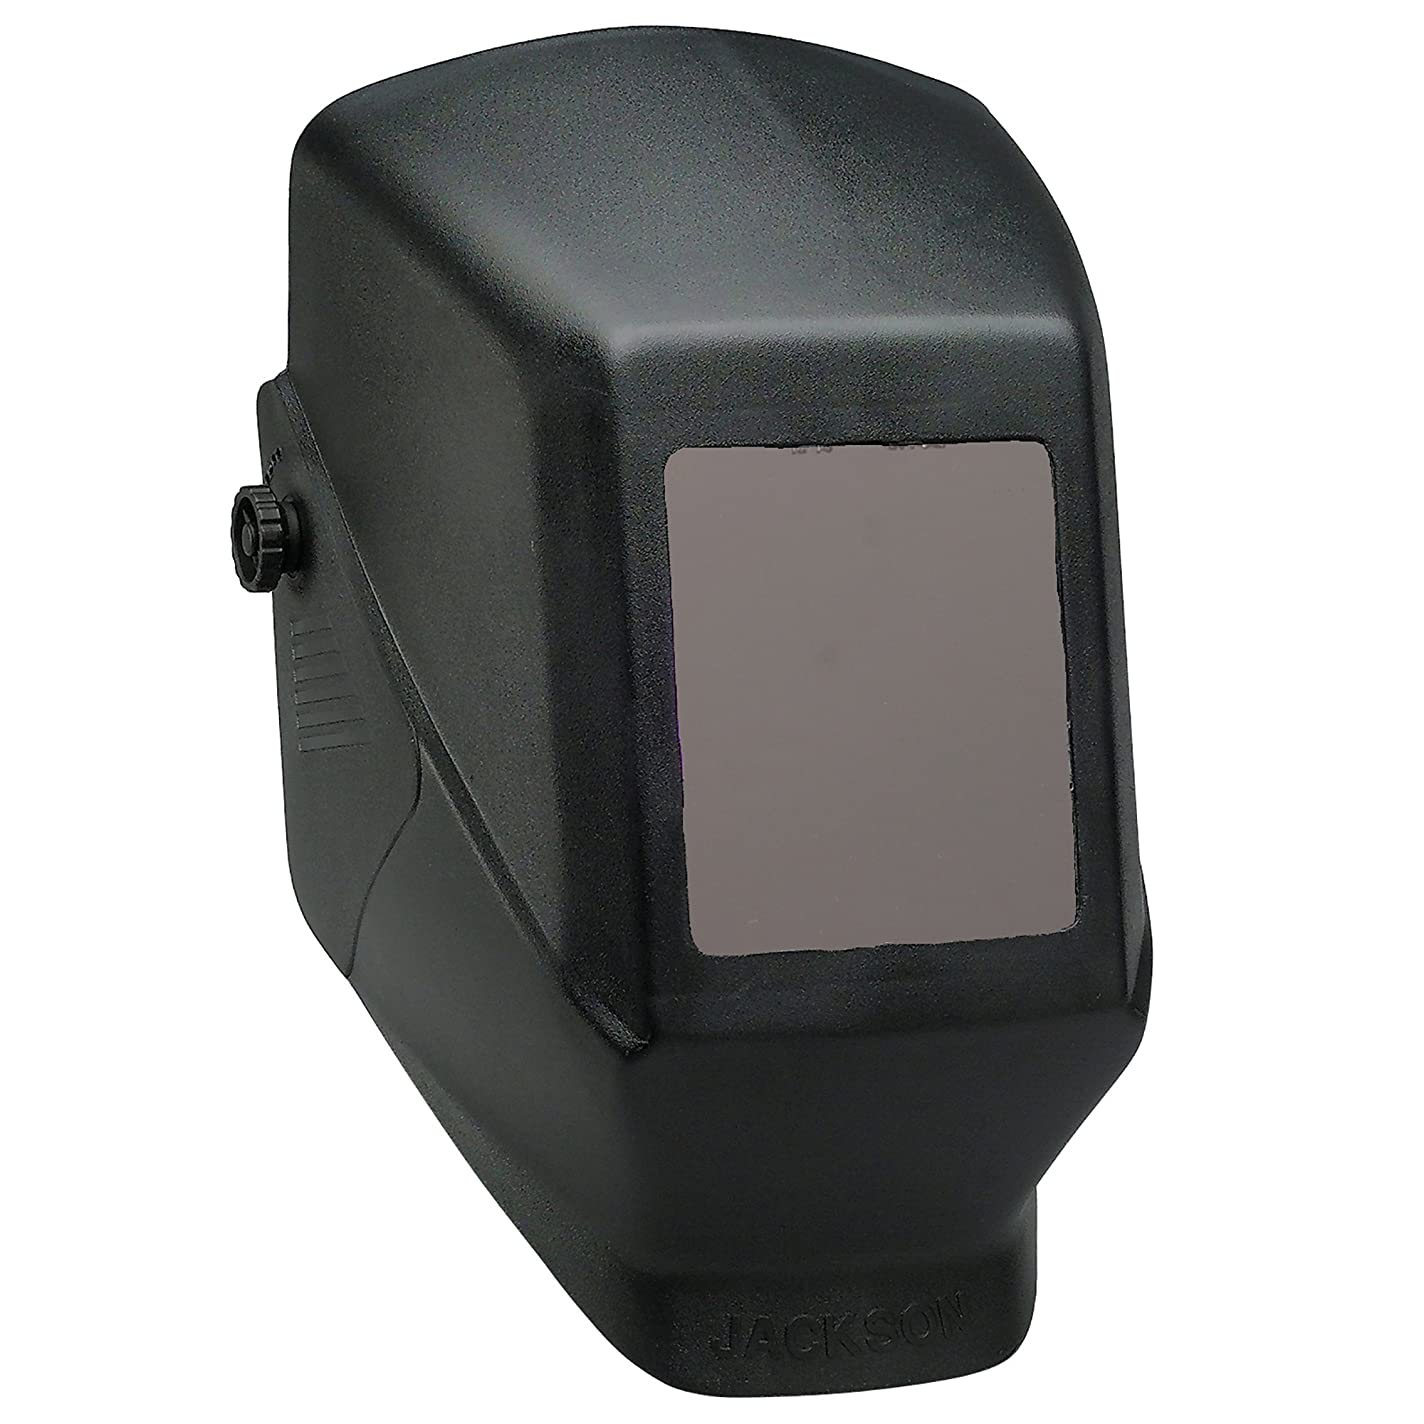 トライアスリート半球支援するJackson Safety Fixed Shade W10 HSL 100 Welding Helmet (15134), Black, 10 Units / Case by Jackson Safety